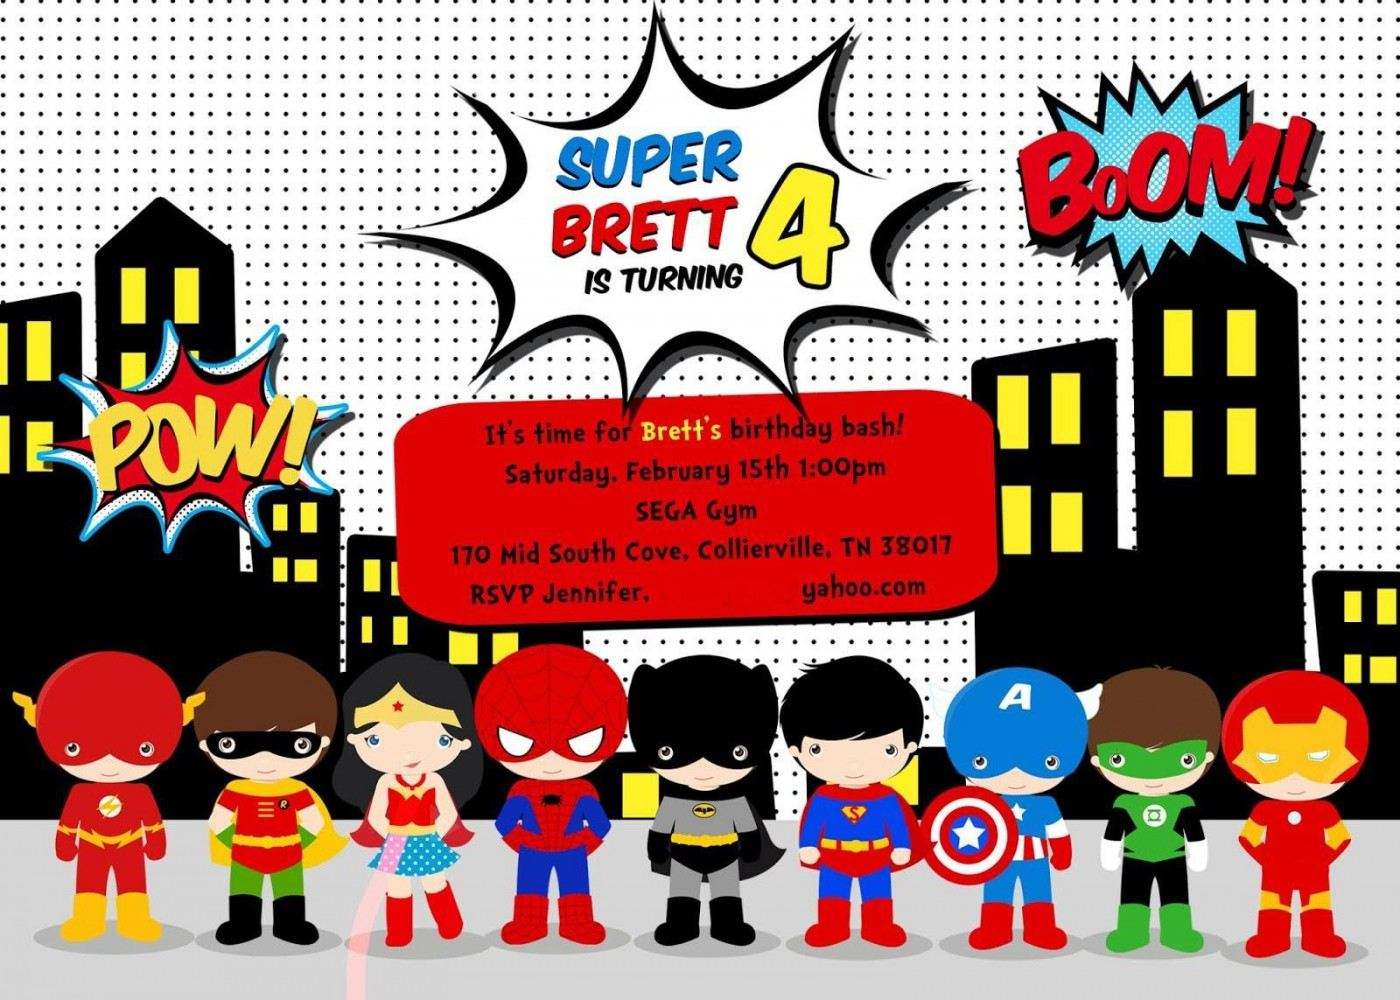 005 Remarkable Superhero Invitation Template Free Highest Clarity  Birthday Party1400